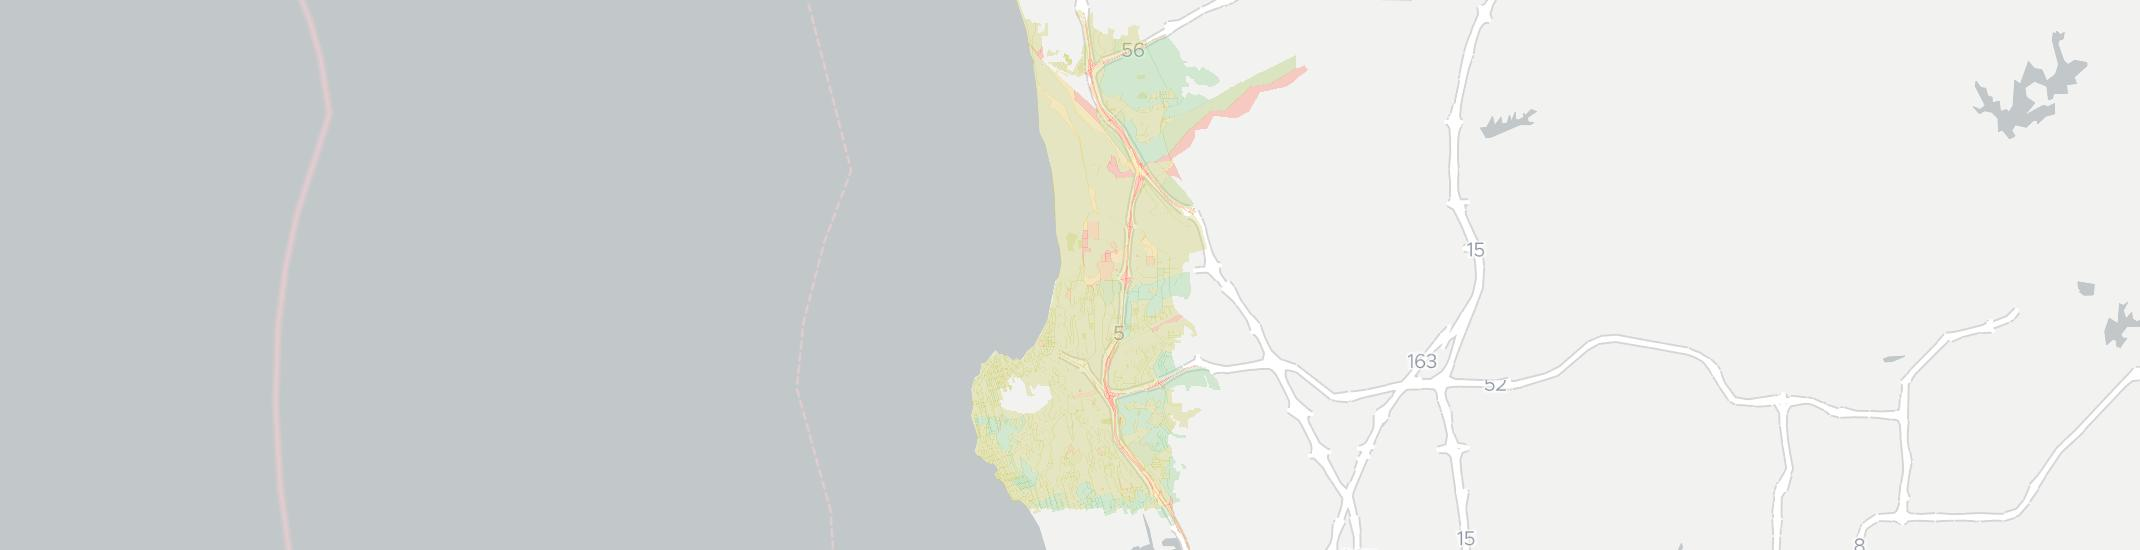 La Jolla Internet Competition Map. Click for interactive map.